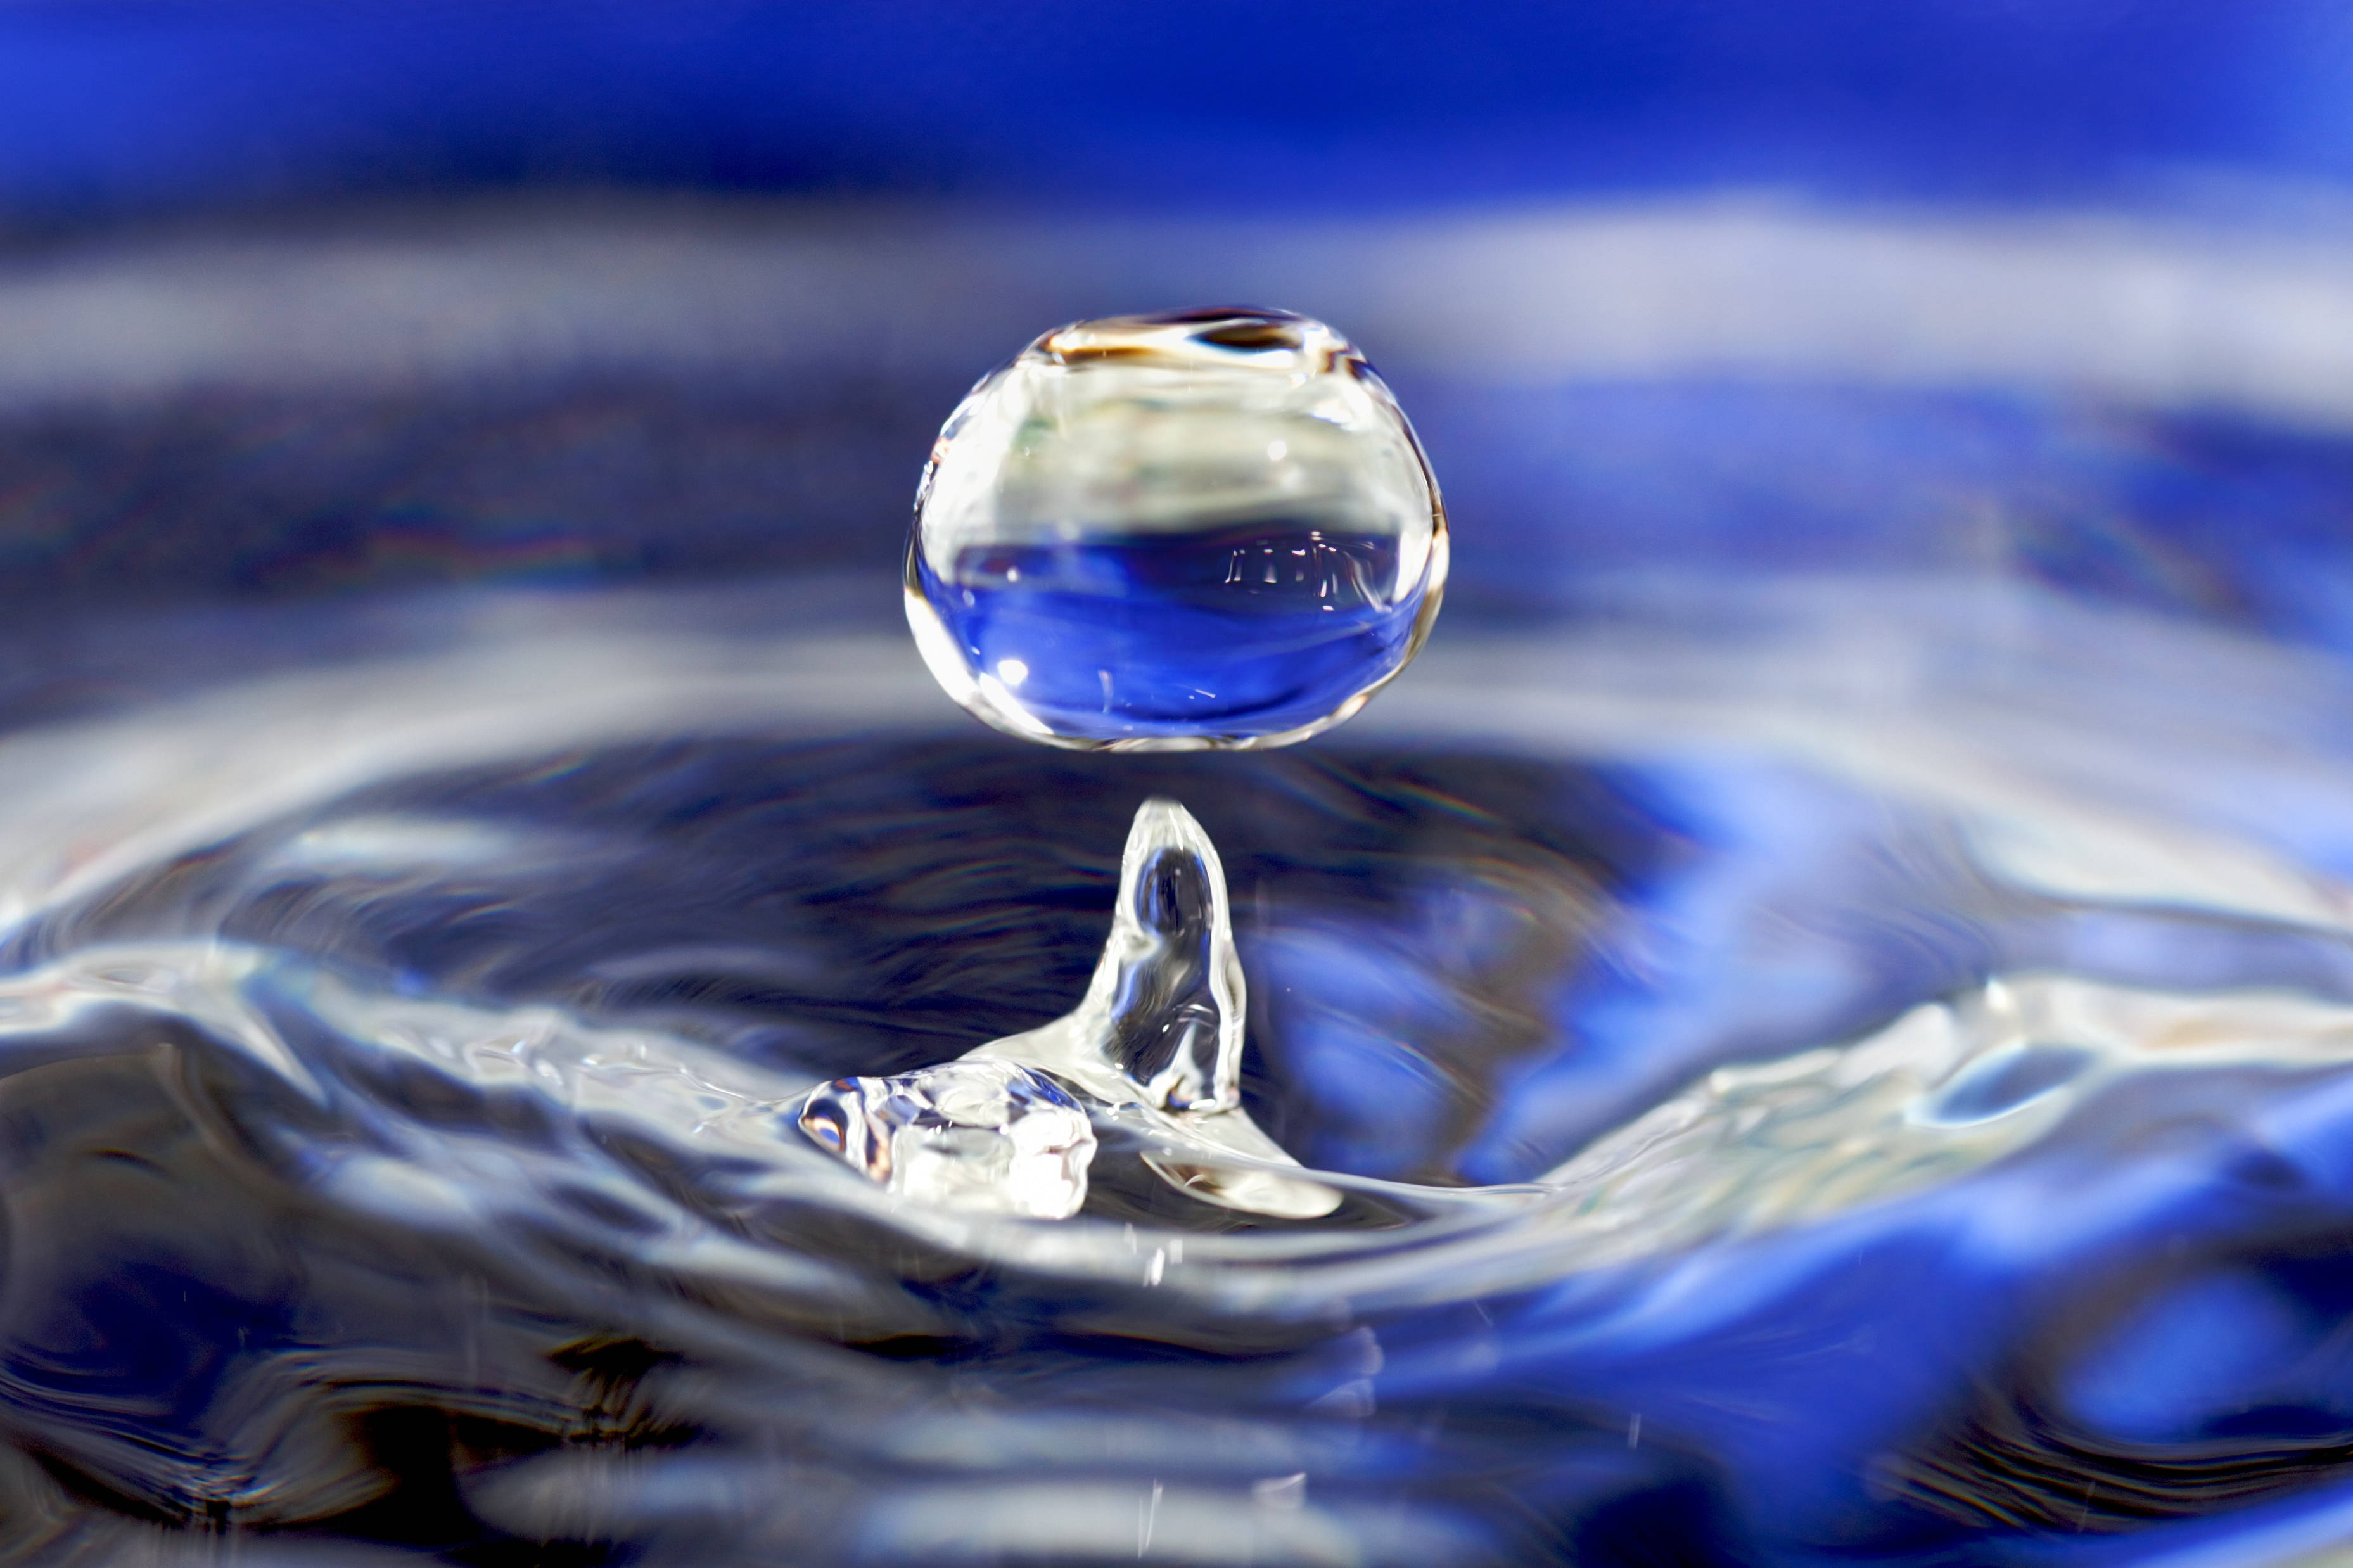 Water drop, 2012. Source: Wikimedia Commons.